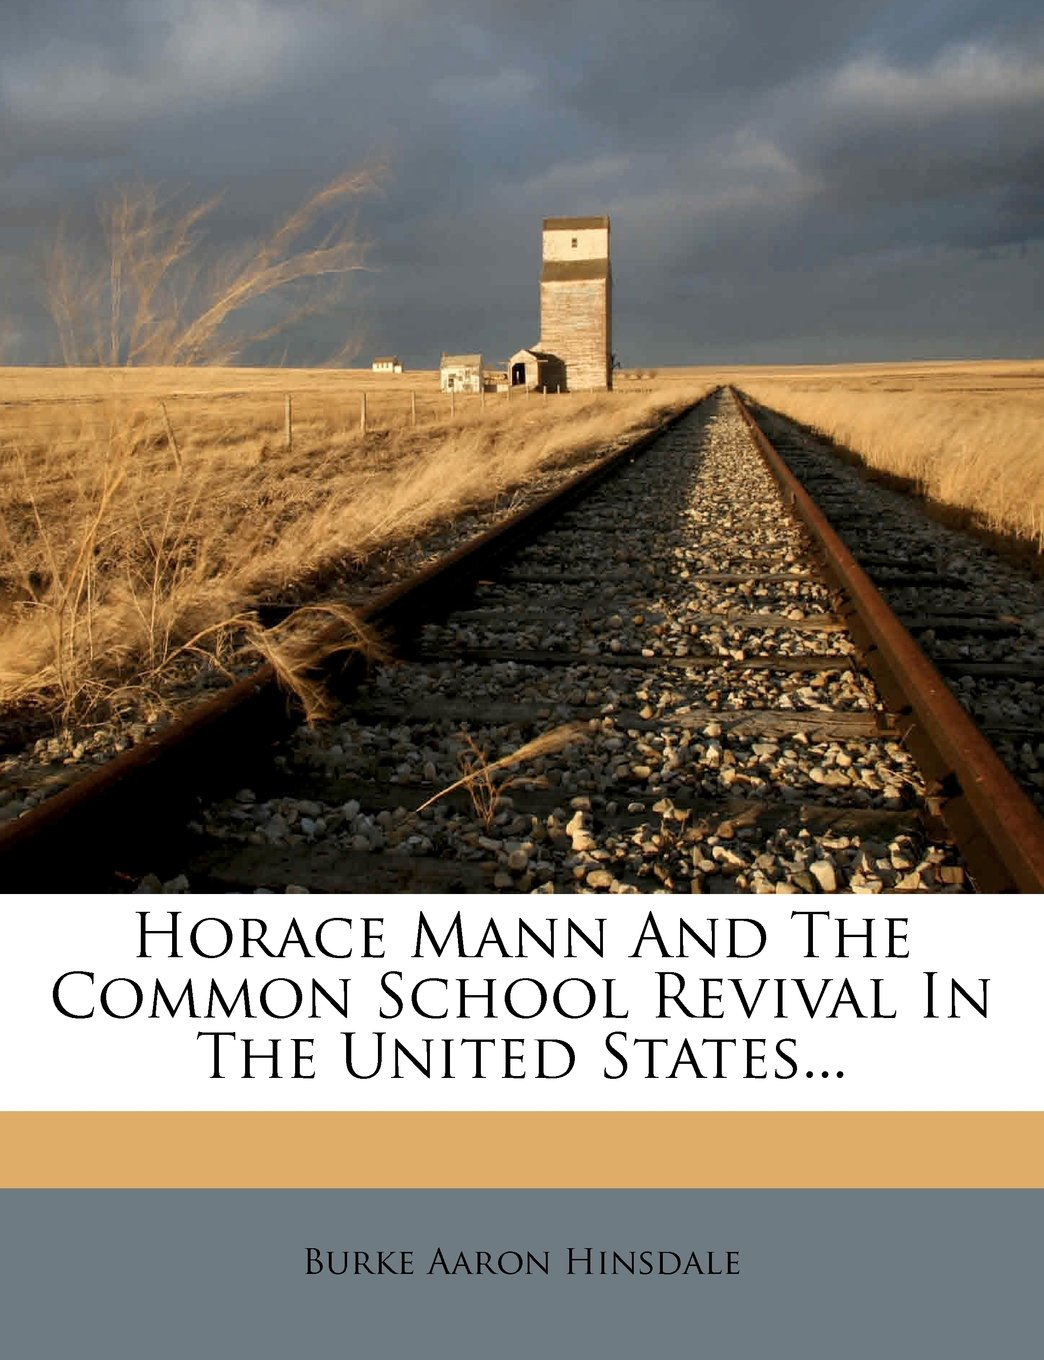 Horace Mann And The Common School Revival In The United States...